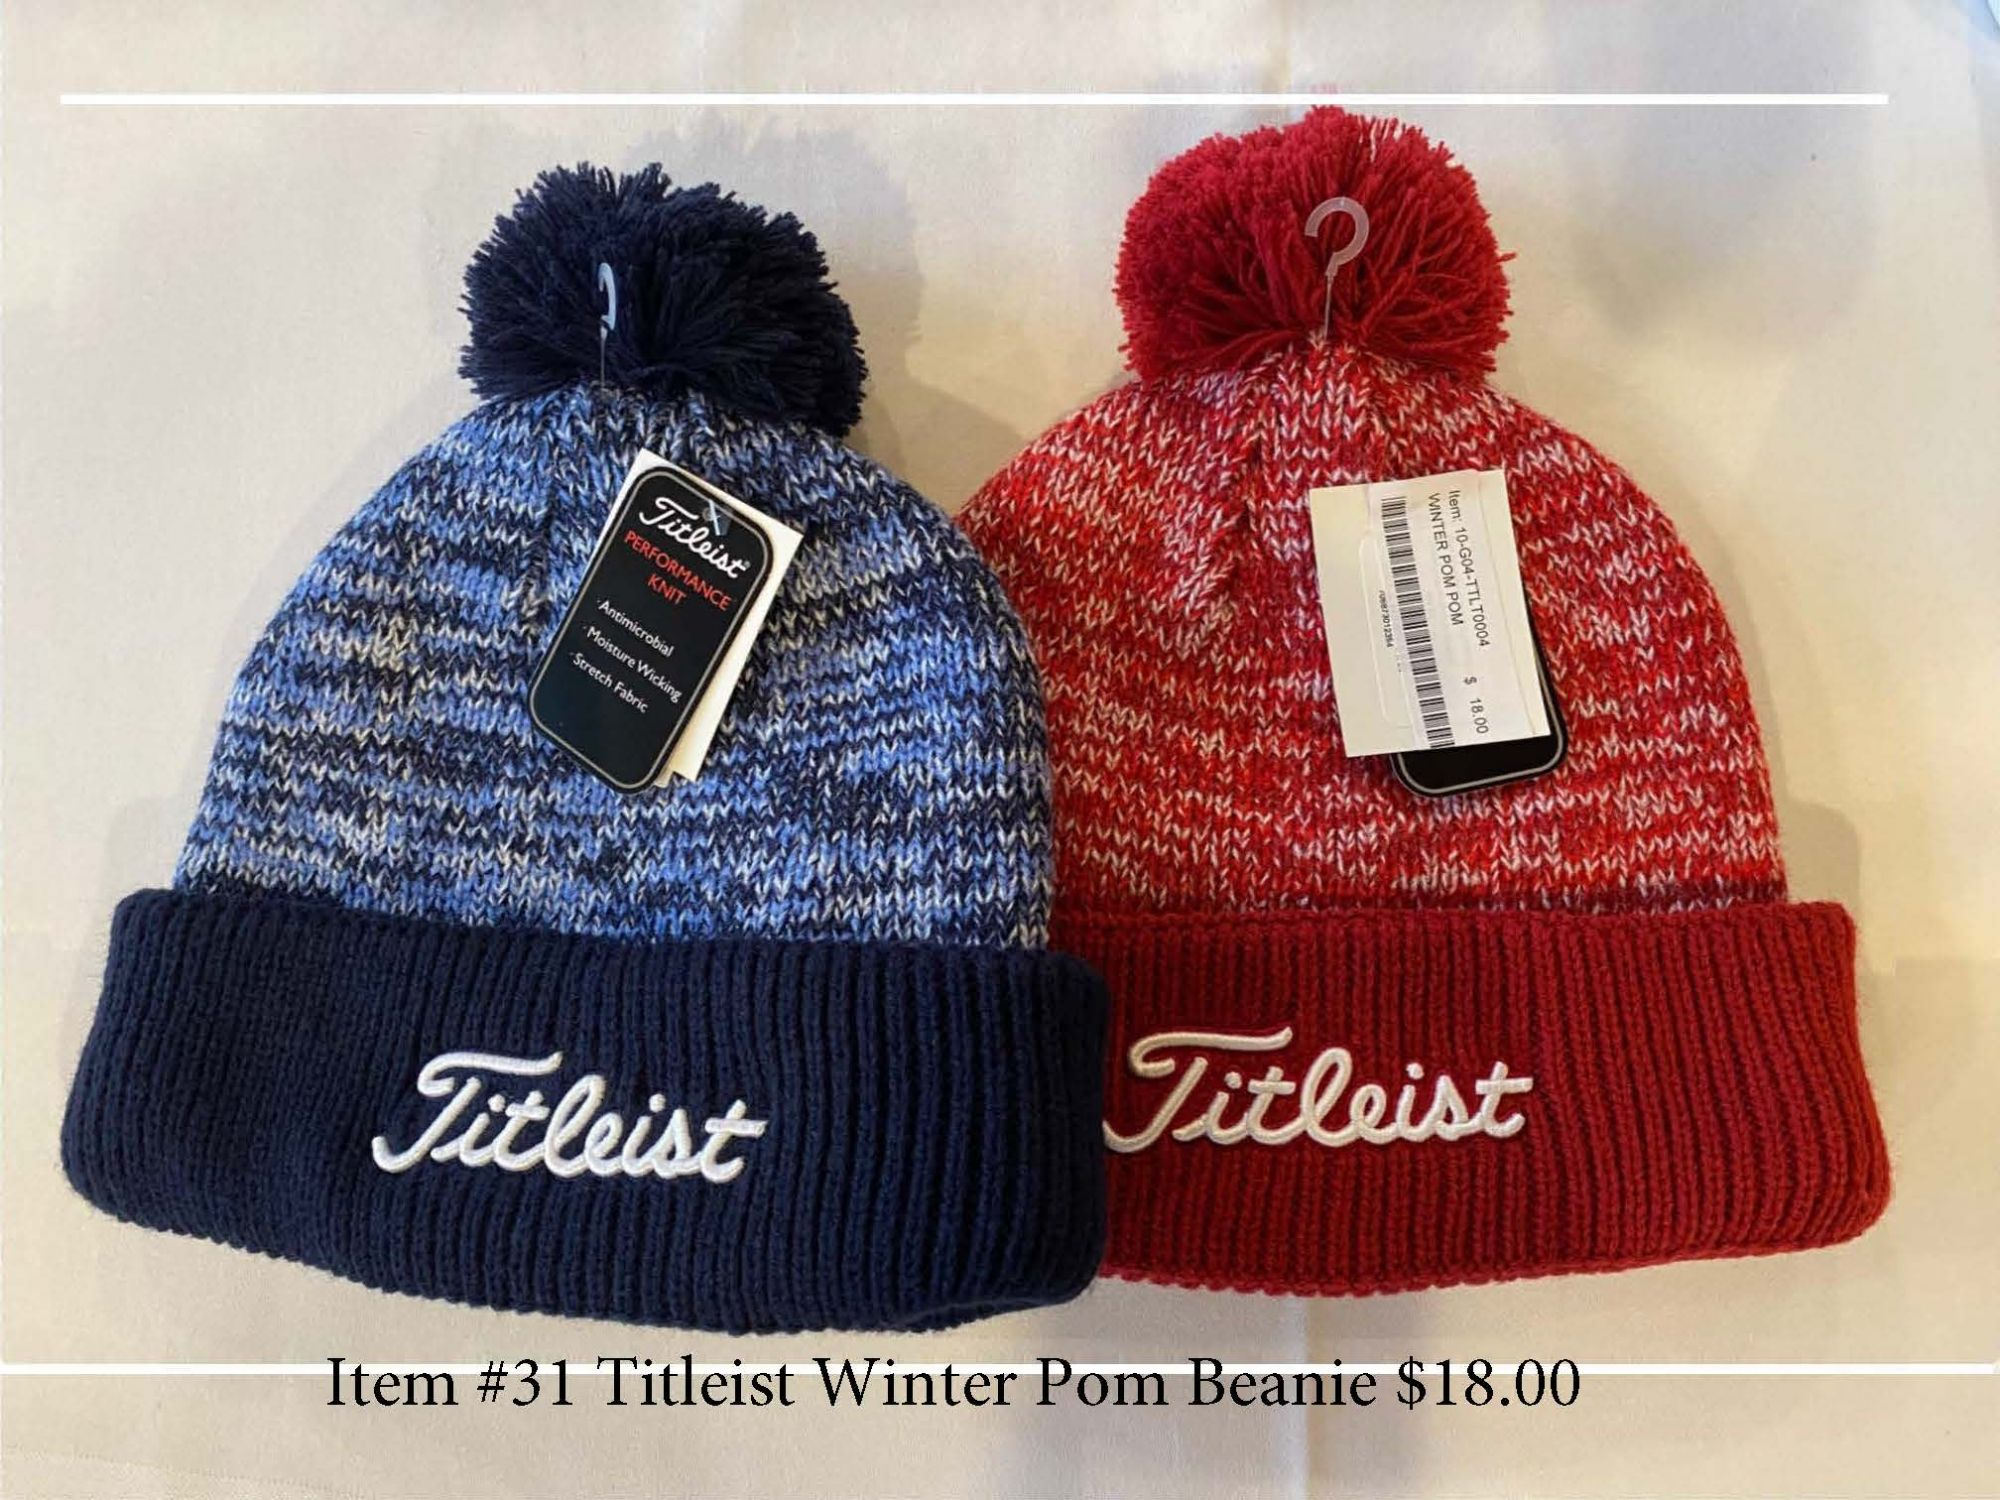 Item_31_Titleist_Winter_Pom_Beanie_18.00.jpg